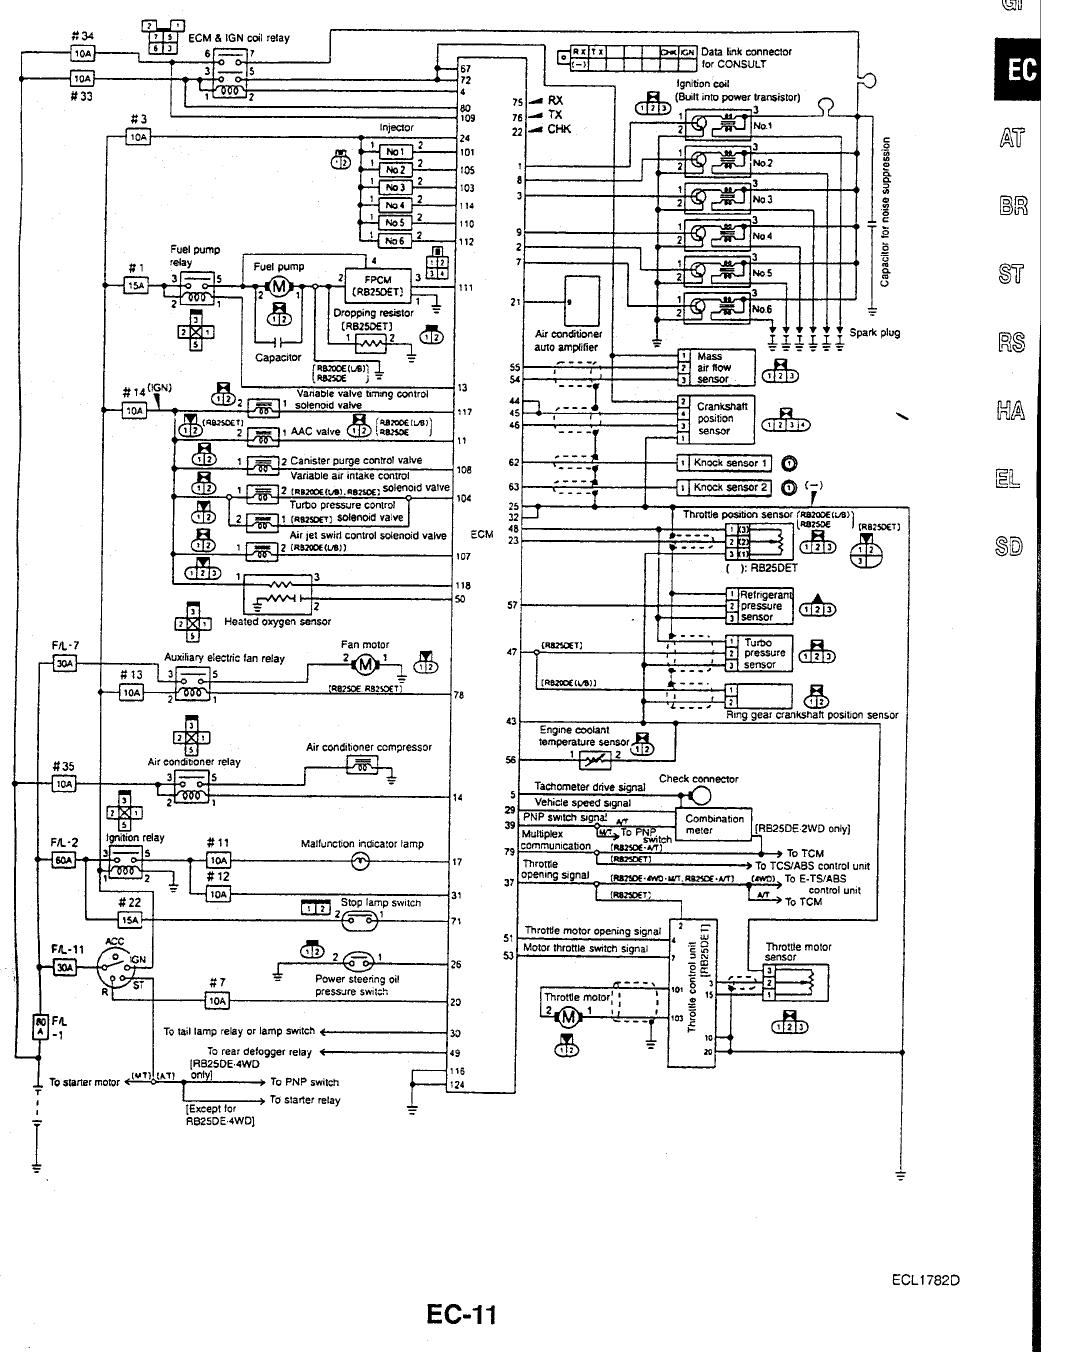 r33 wiring diagram